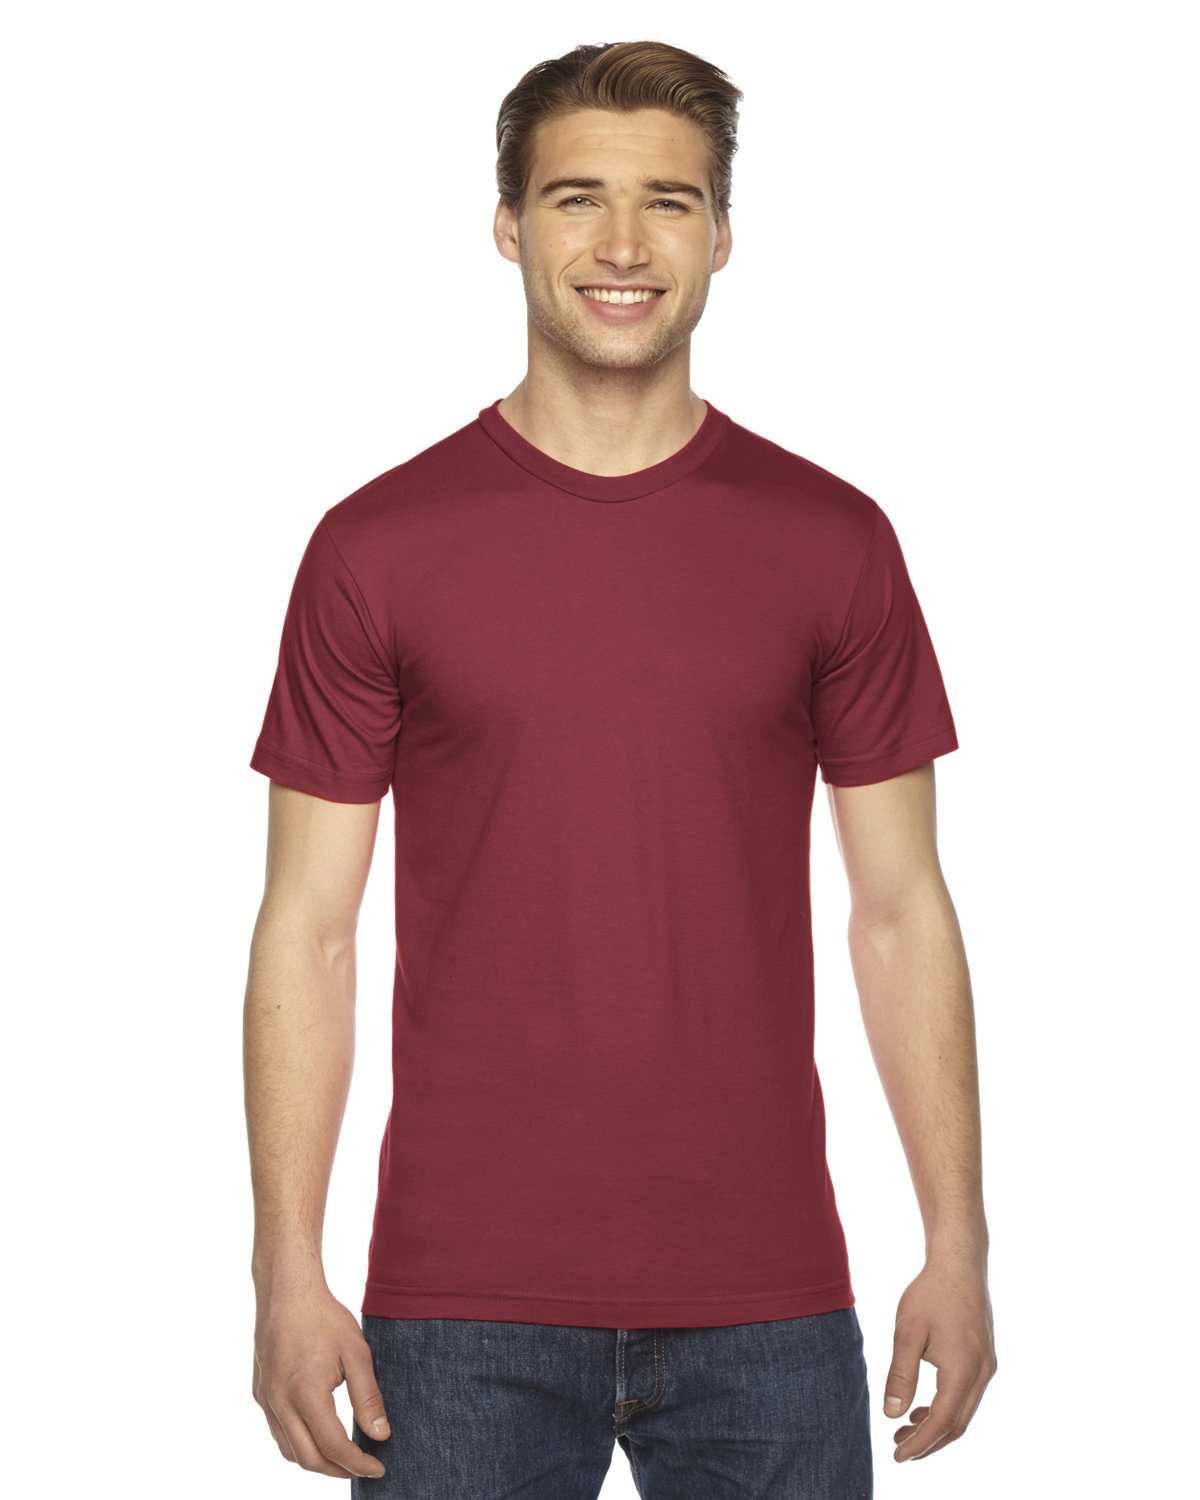 American Apparel Unisex Fine Jersey USA Made T-Shirt CRANBERRY